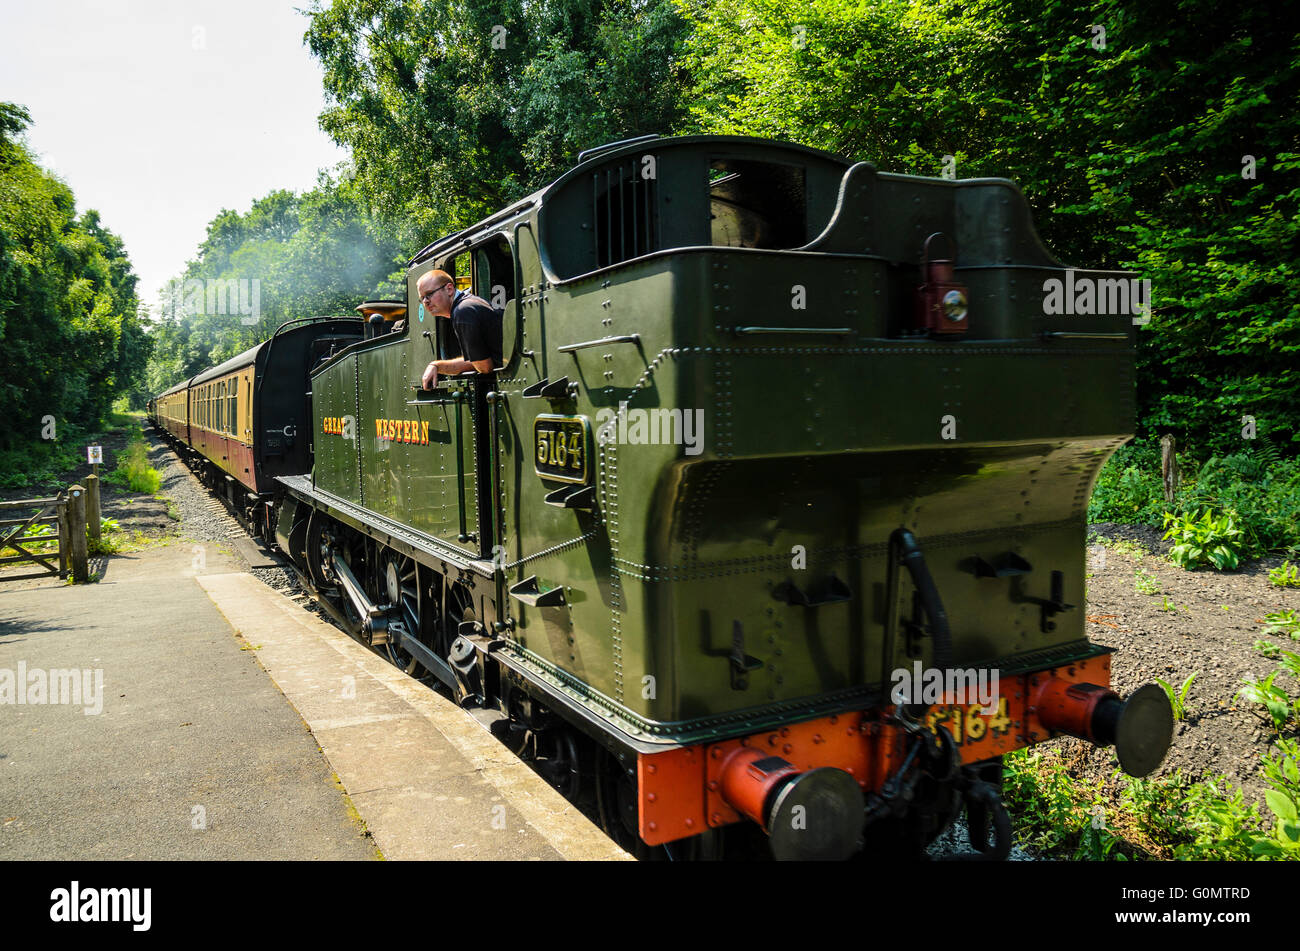 Ex-Great Western Railway tank engine No. 5164 hauls a train on the Severn Valley Railway in Shropshire England - Stock Image